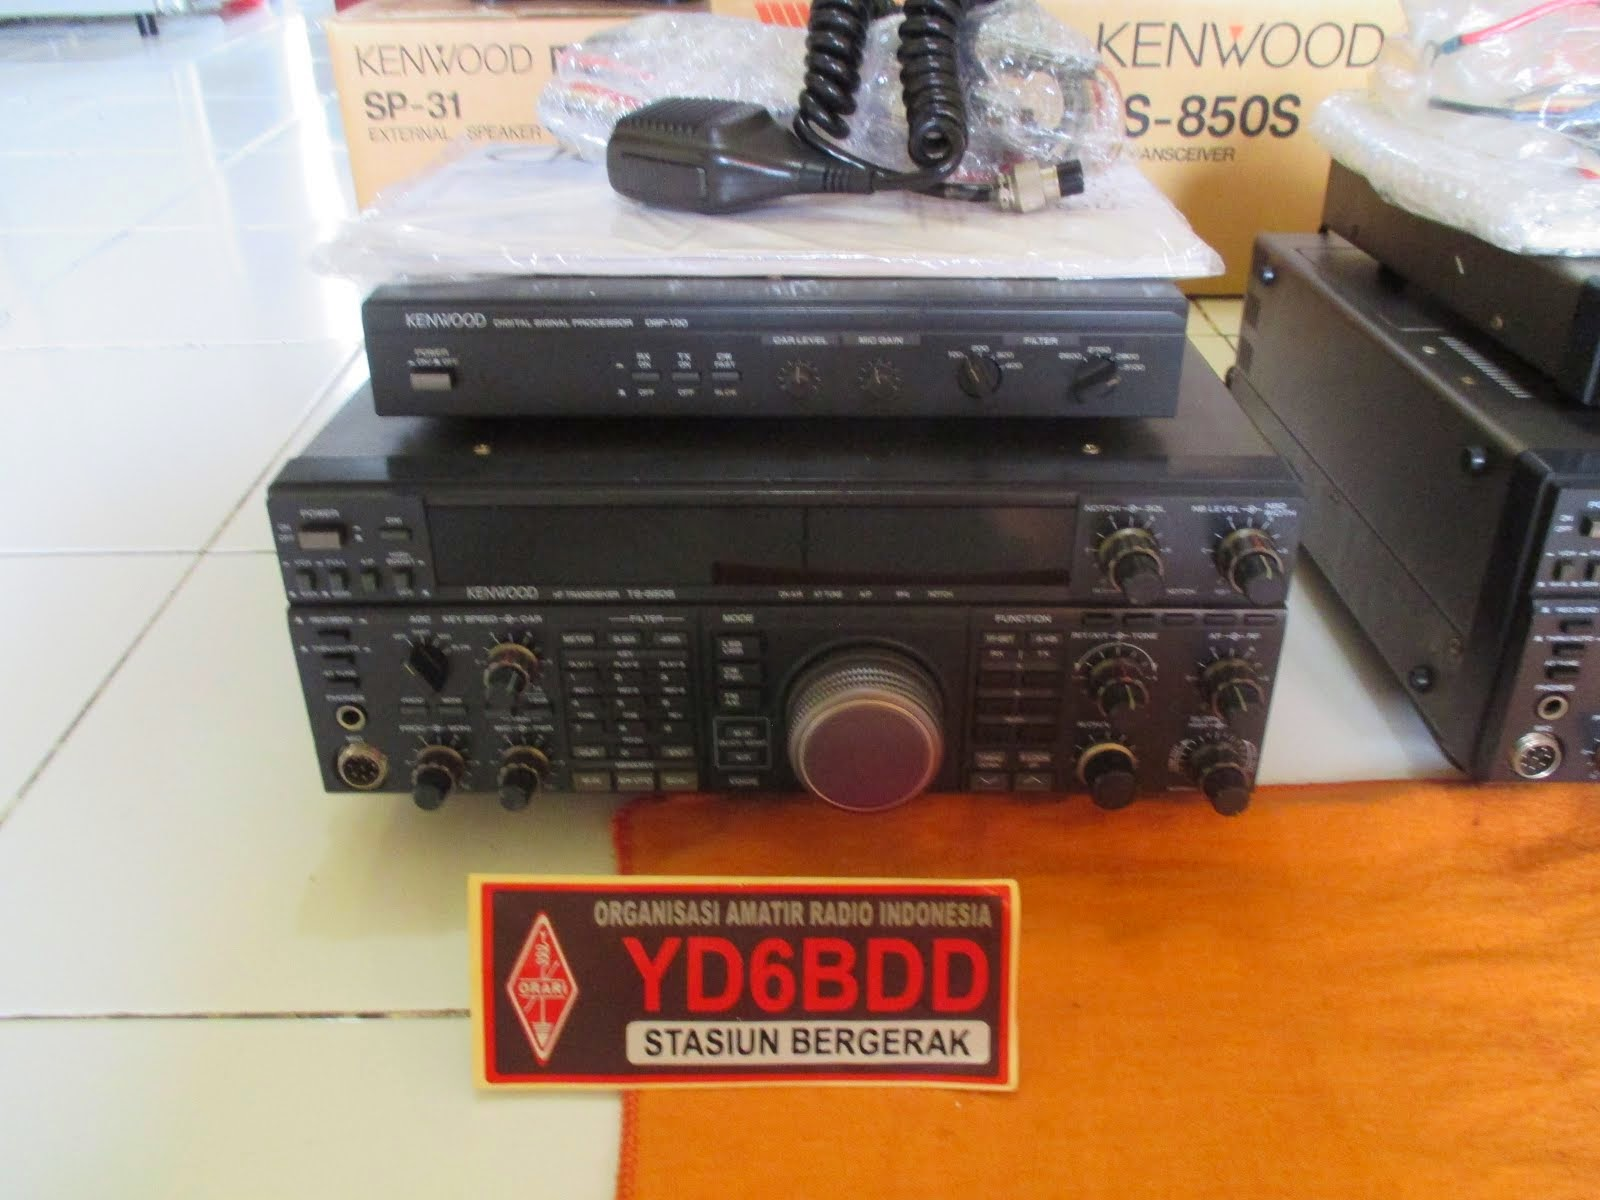 KENWOOD TS850s AT s/n 2 + BOOK MANUAL (Ts850sAT+DSP100) KE 1